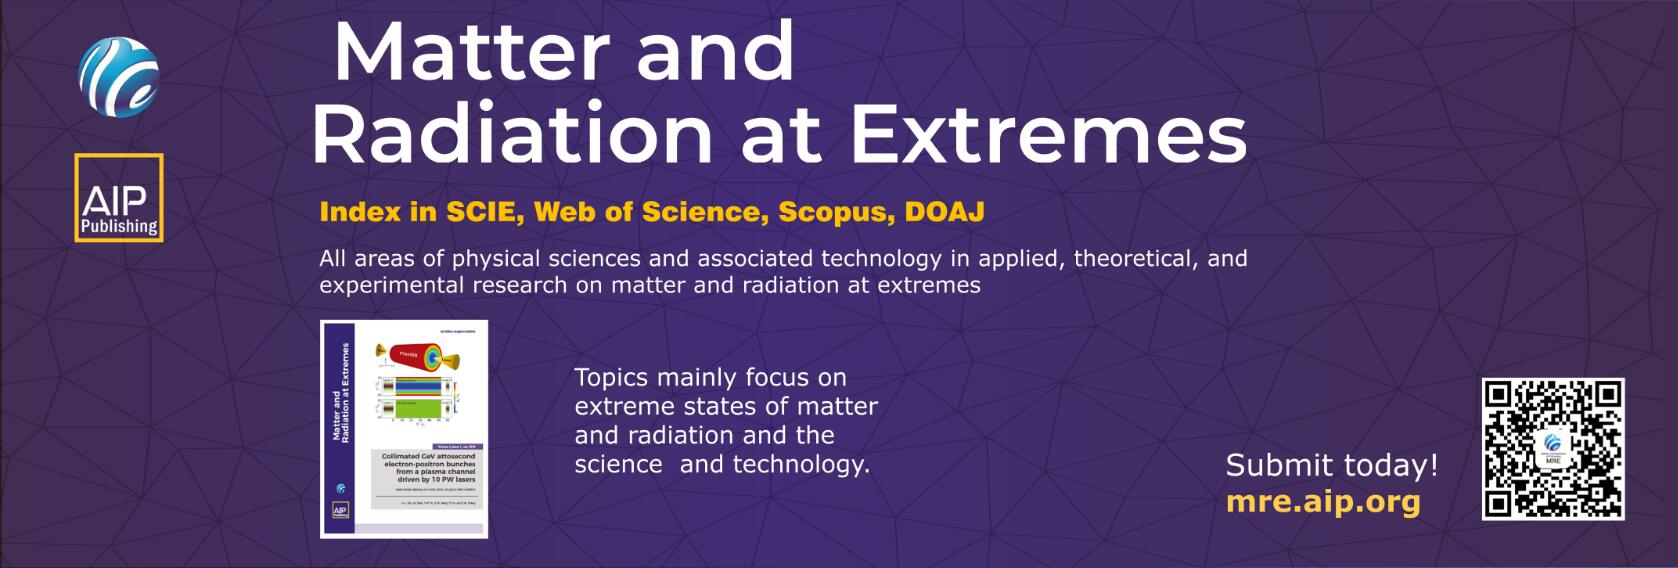 The 5th International Conference on Matter and Radiation at Extremes